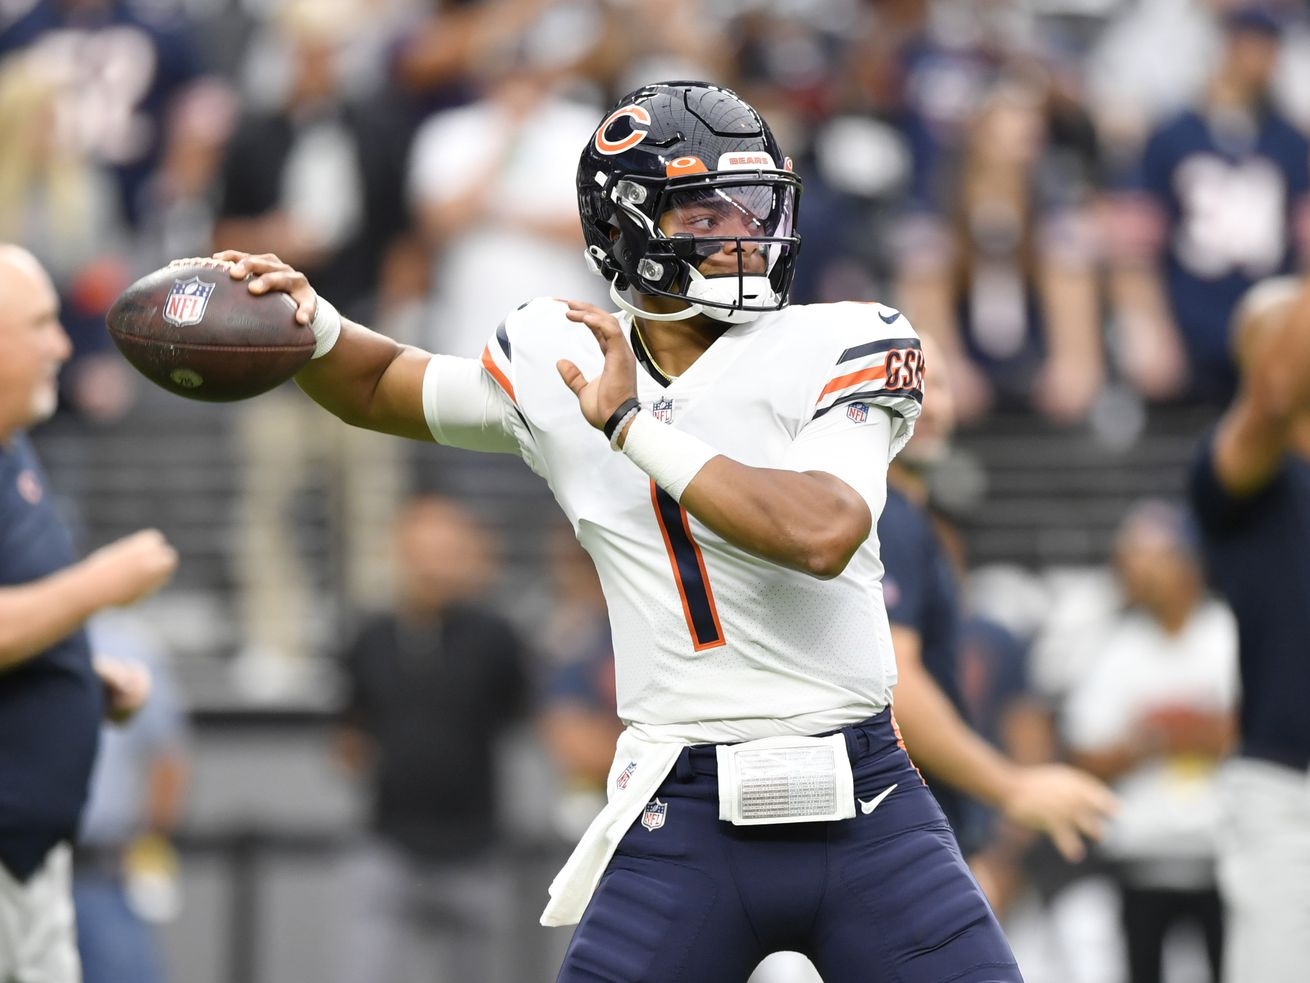 Justin Fields completed 12-of-20 passes for 11 yards, one touchdown and no interceptions for a 91.9 passer rating against the Raiders on Sunday.